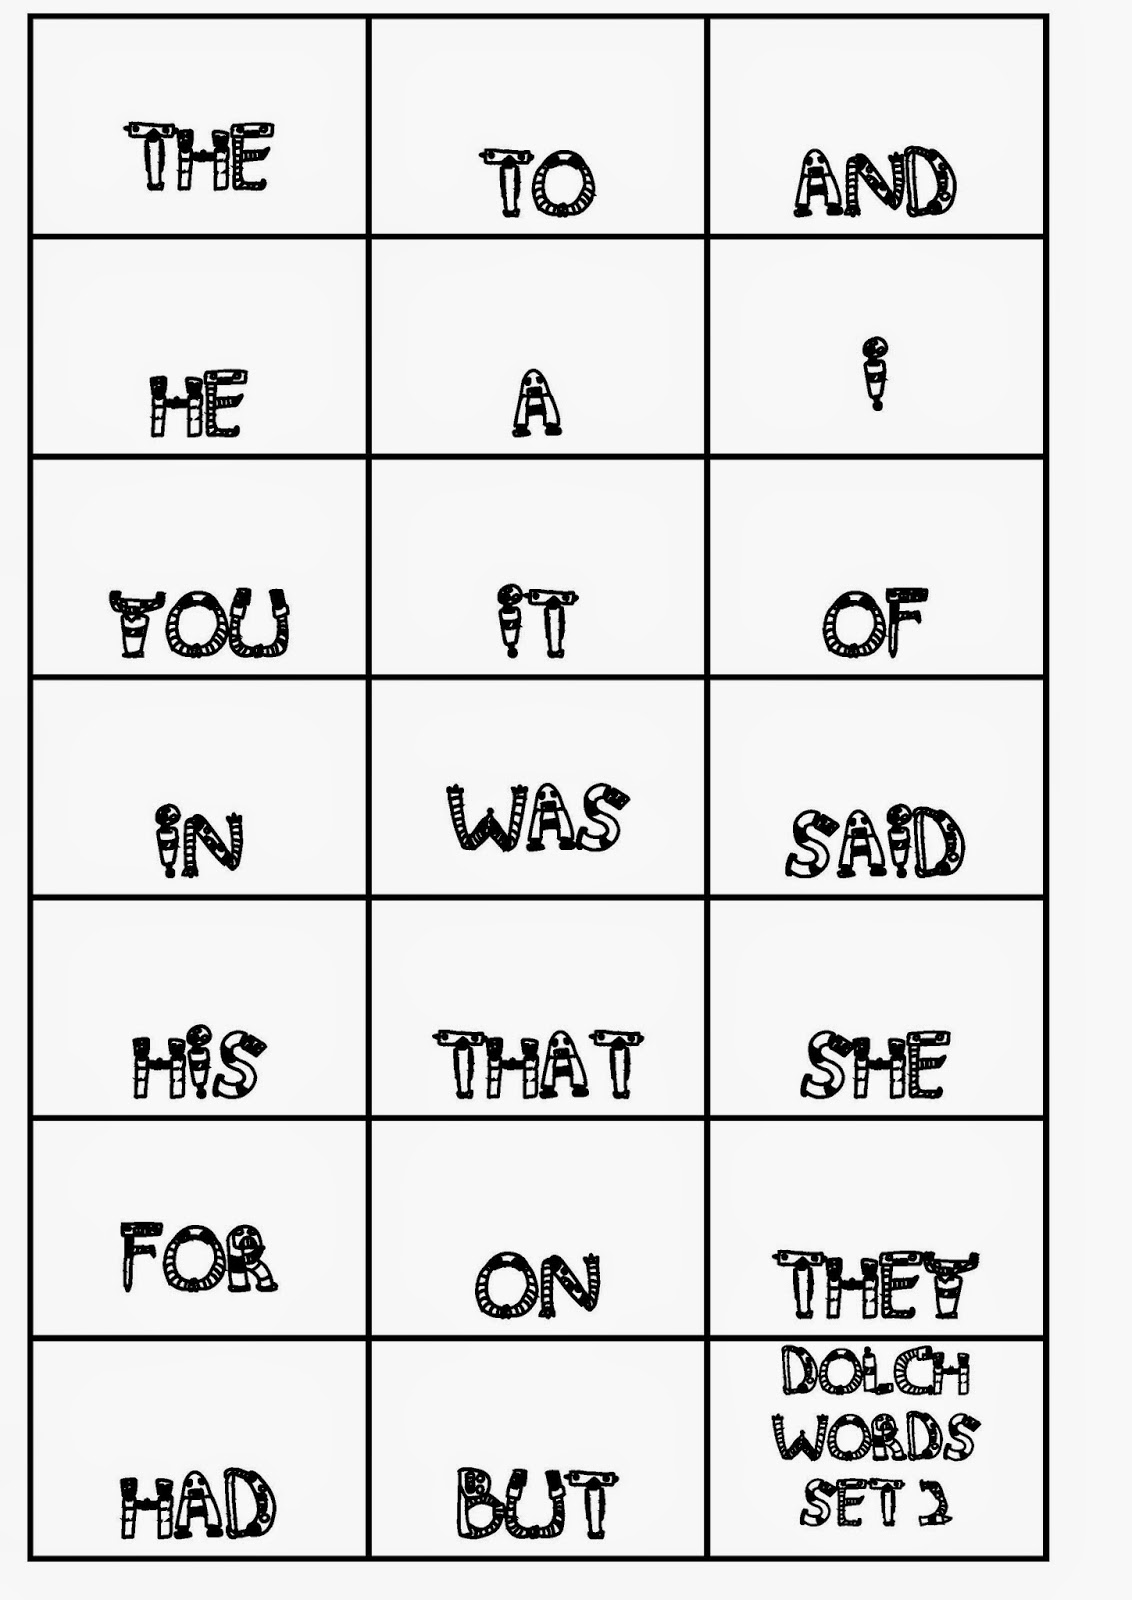 I Teacher Sight Words Games Memory Game And Loop Cards